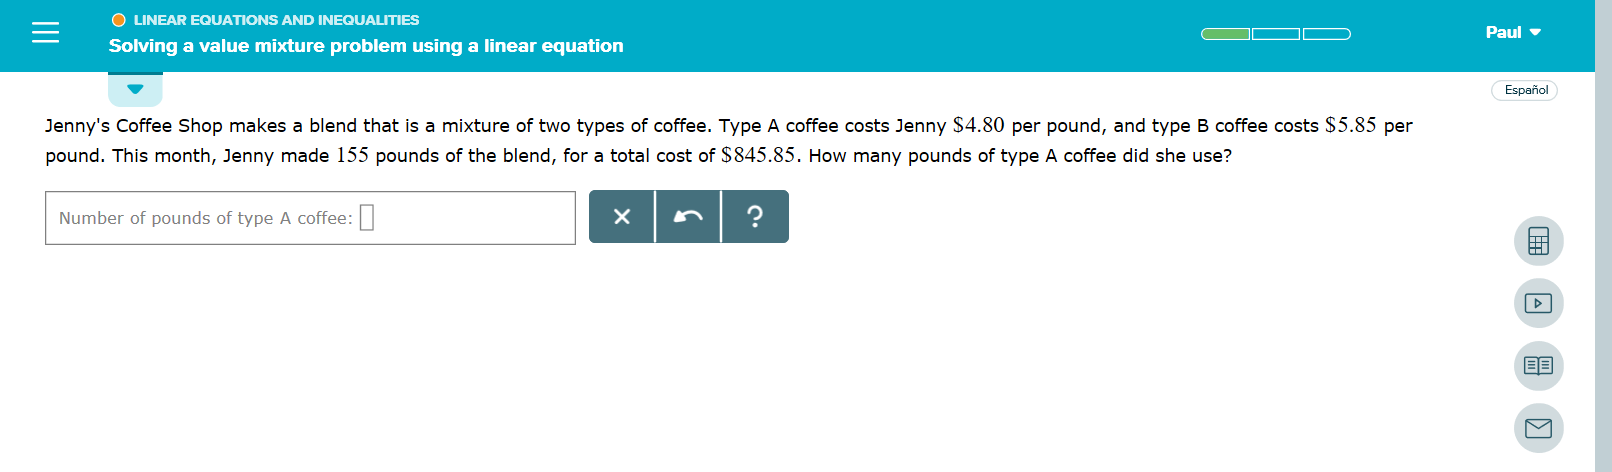 O LINEAR EQUATIONS AND INEQUALITIES Paul Solving a value mixture problem using a linear equation Español Jenny's Coffee Shop makes a blend that is a mixture of two types of coffee. Type A coffee costs Jenny $4.80 per pound, and type B coffee costs $5.85 per pound. This month, Jenny made 155 pounds of the blend, for a total cost of $845.85. How many pounds of type A coffee did she use? ? X Number of pounds of type A coffee: